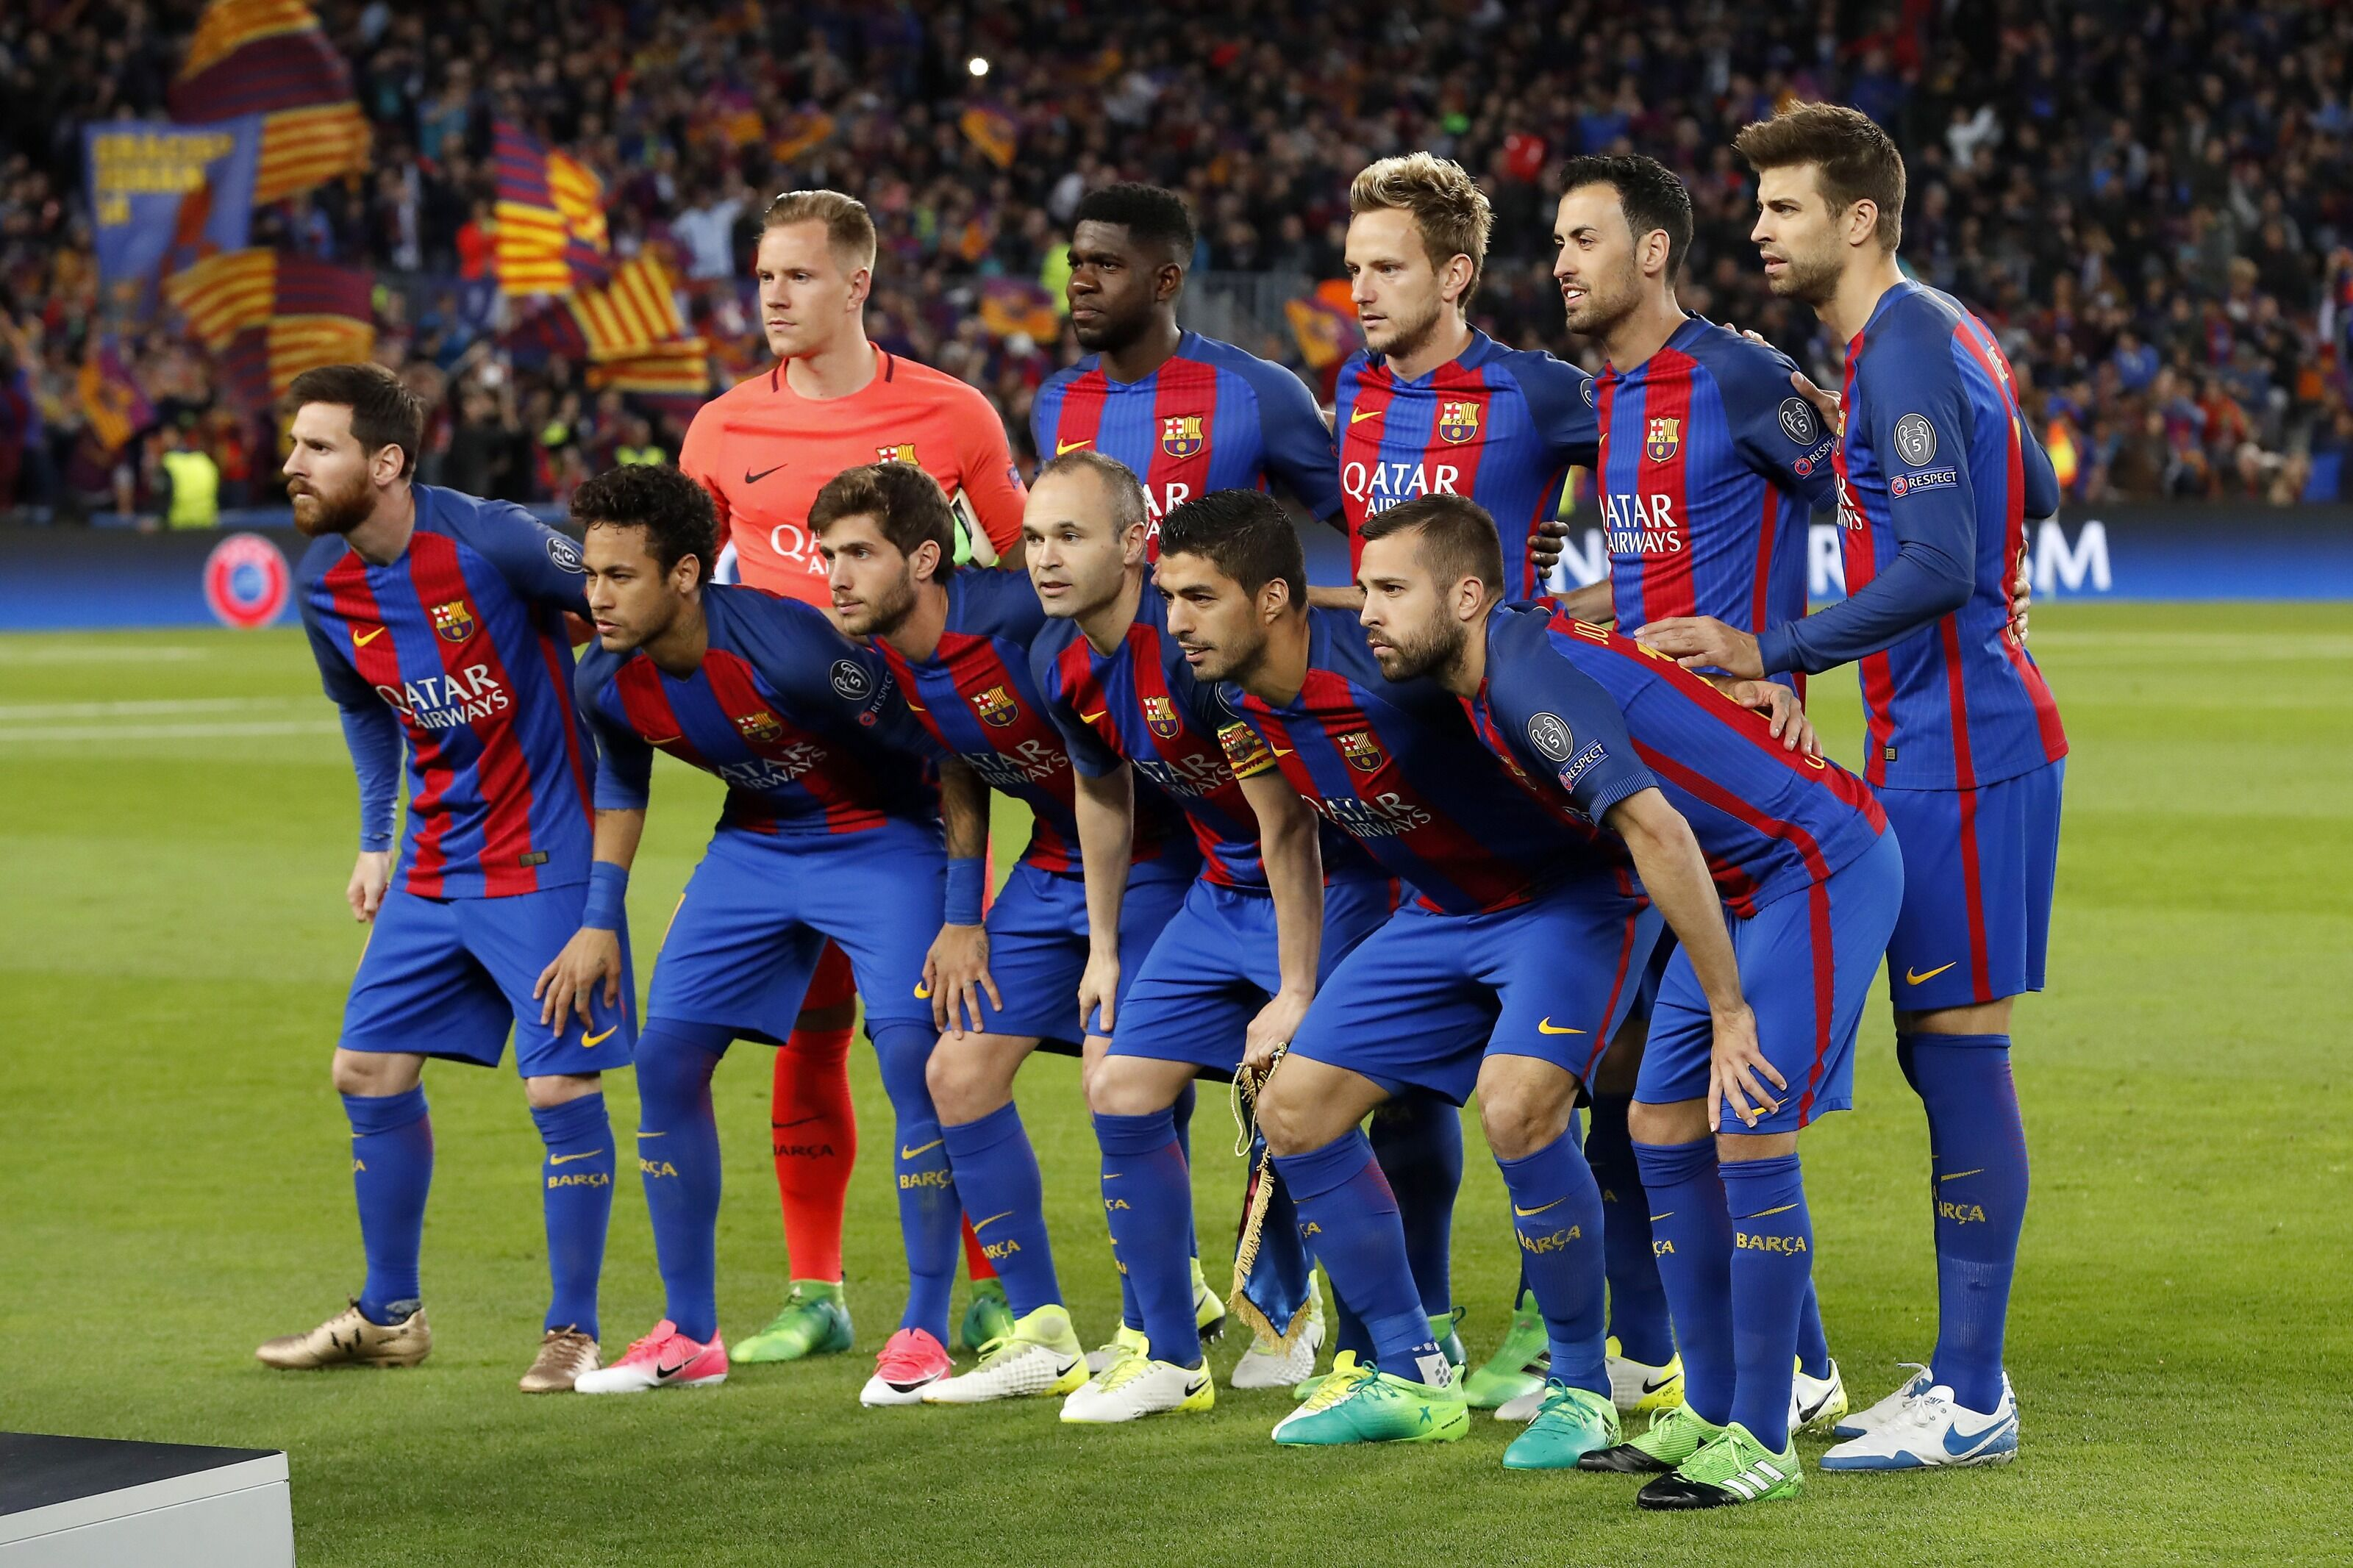 The Barcelona XI of the most successful decade in its history